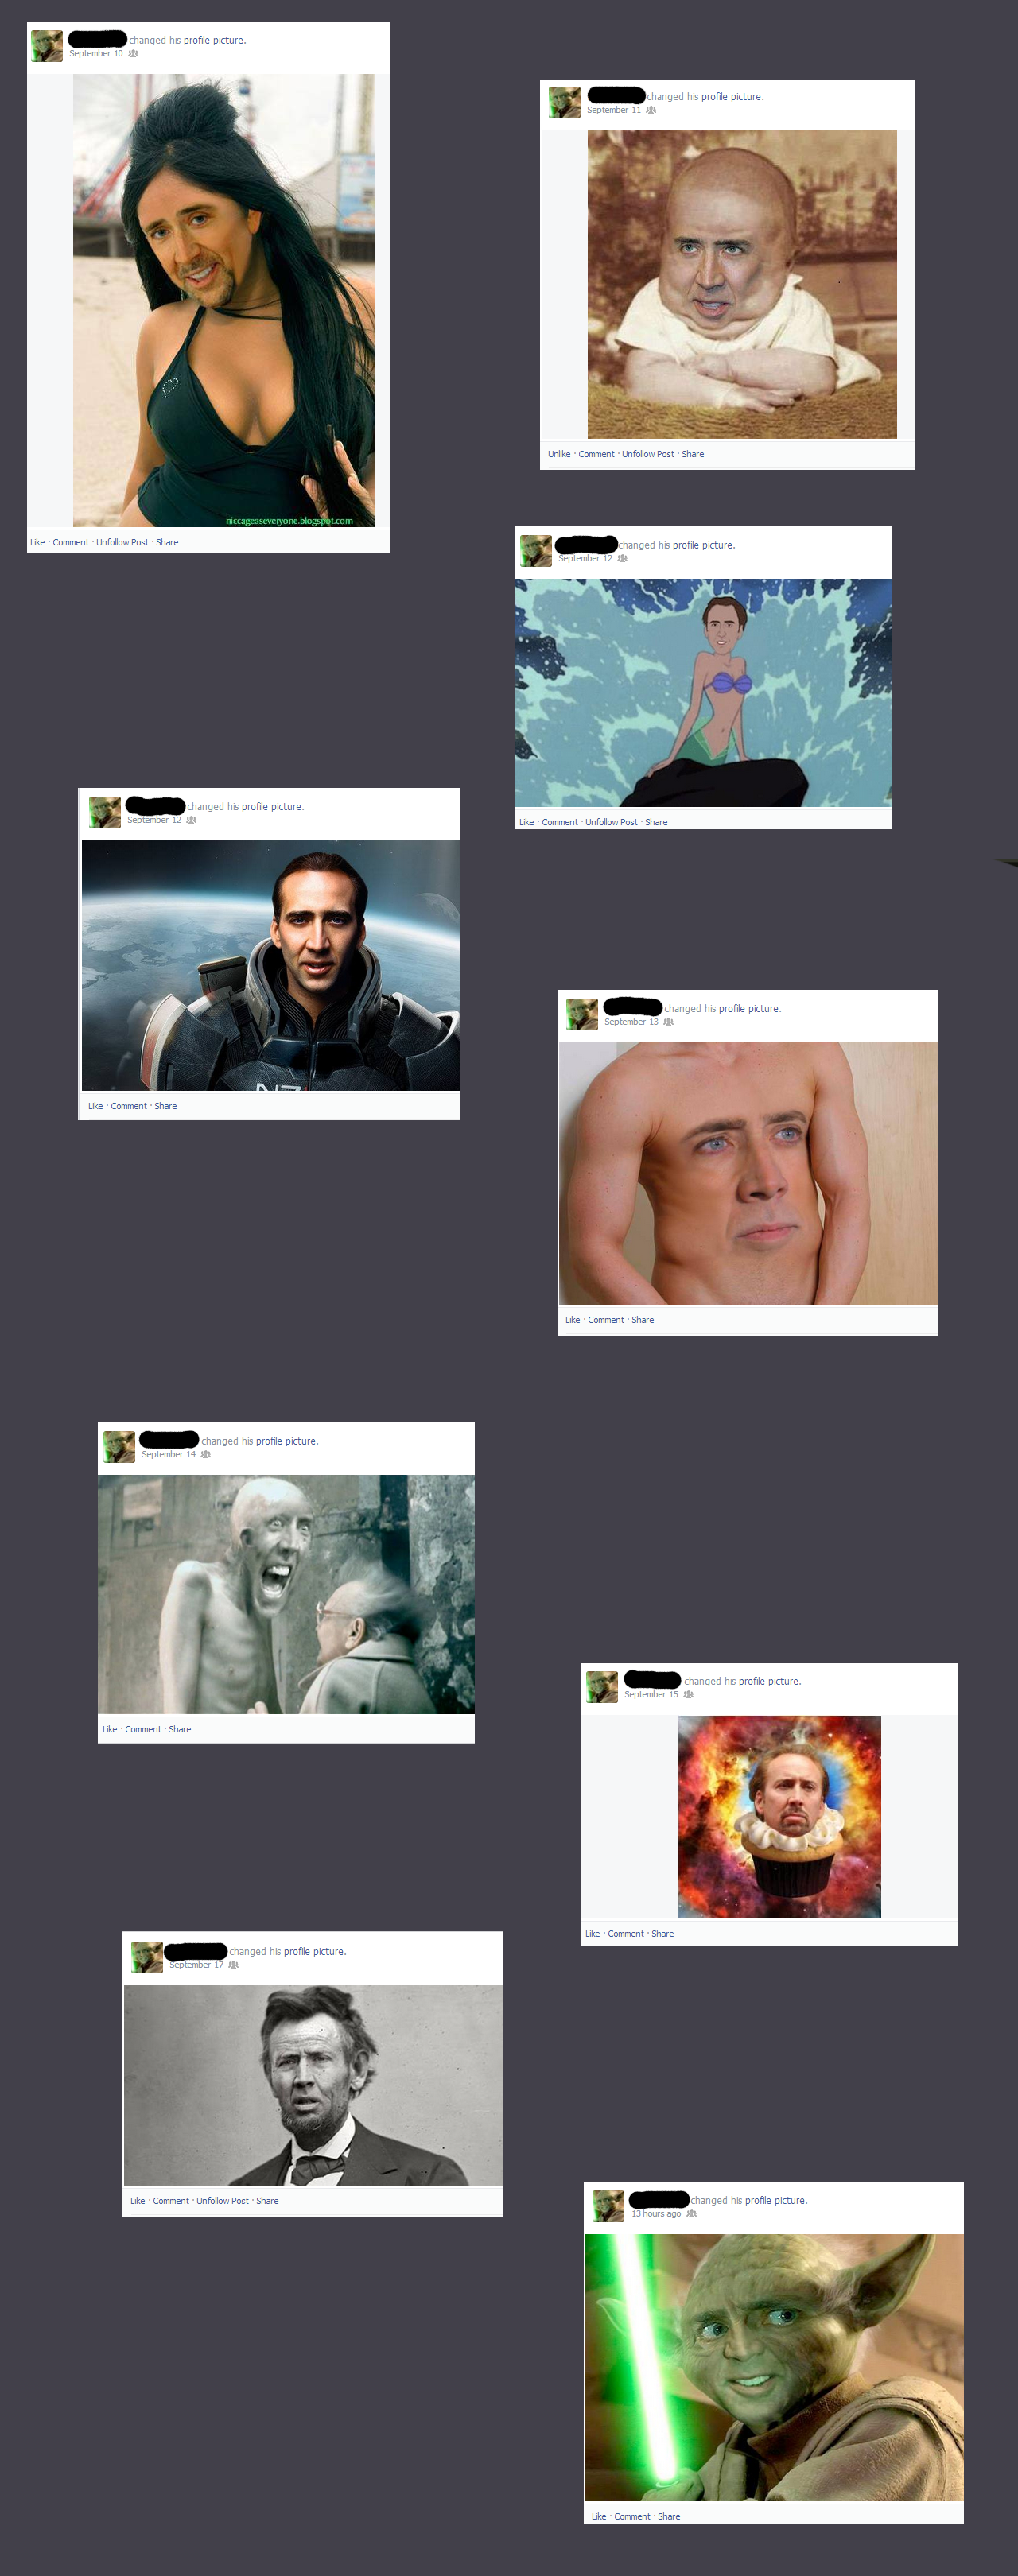 The Caged Man (read desc). A friend of mine has started changing his picture to Cage for a while, and claims he will do it for the full month. He has become kno